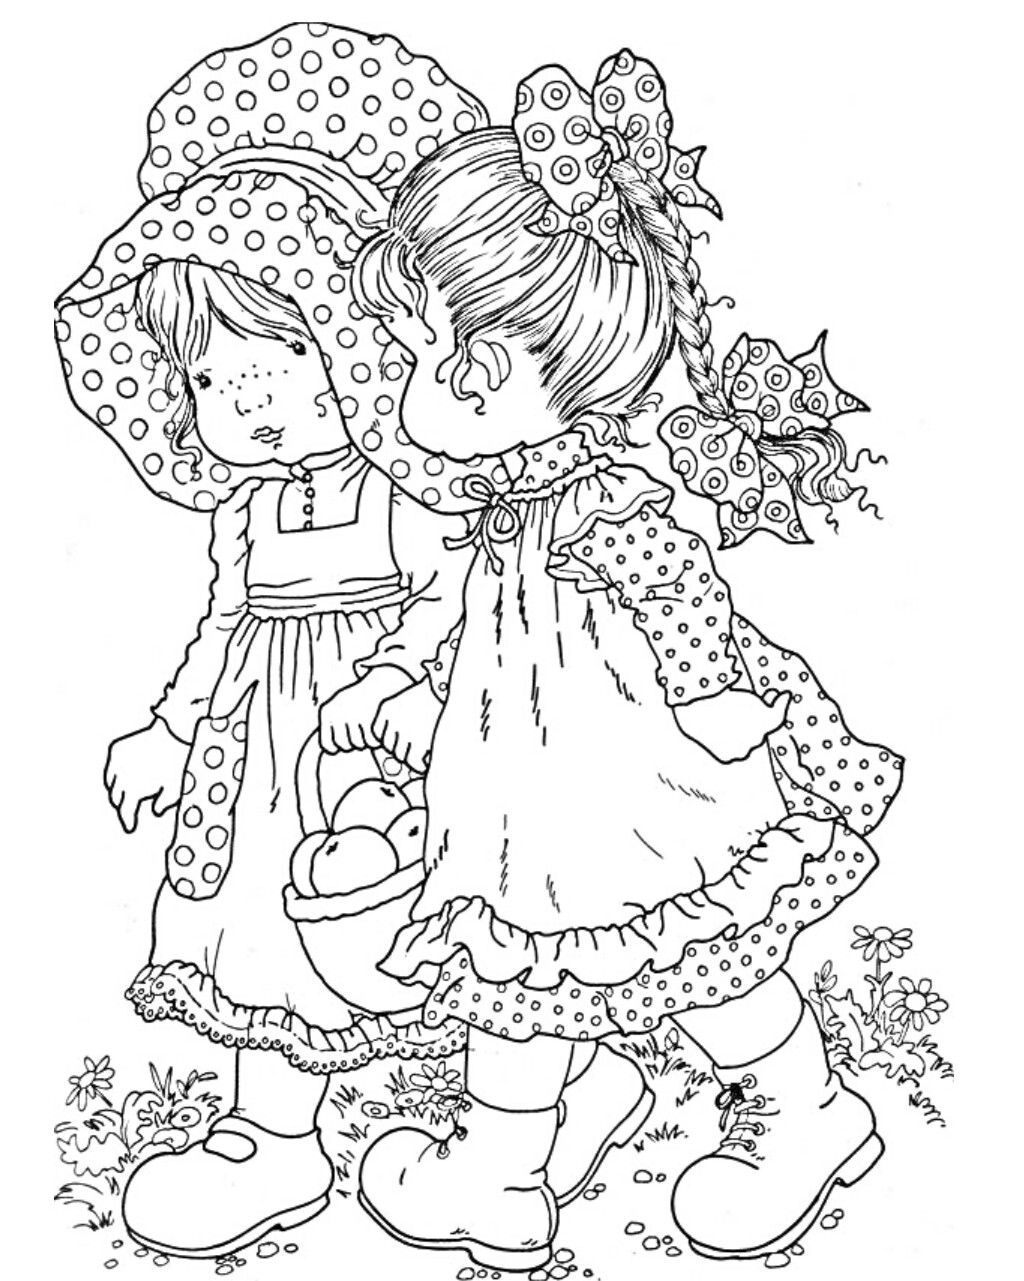 Pin By Connie Ochsner On Hollie Hobbie With Images Sarah Kay Coloring Pages Coloring Books